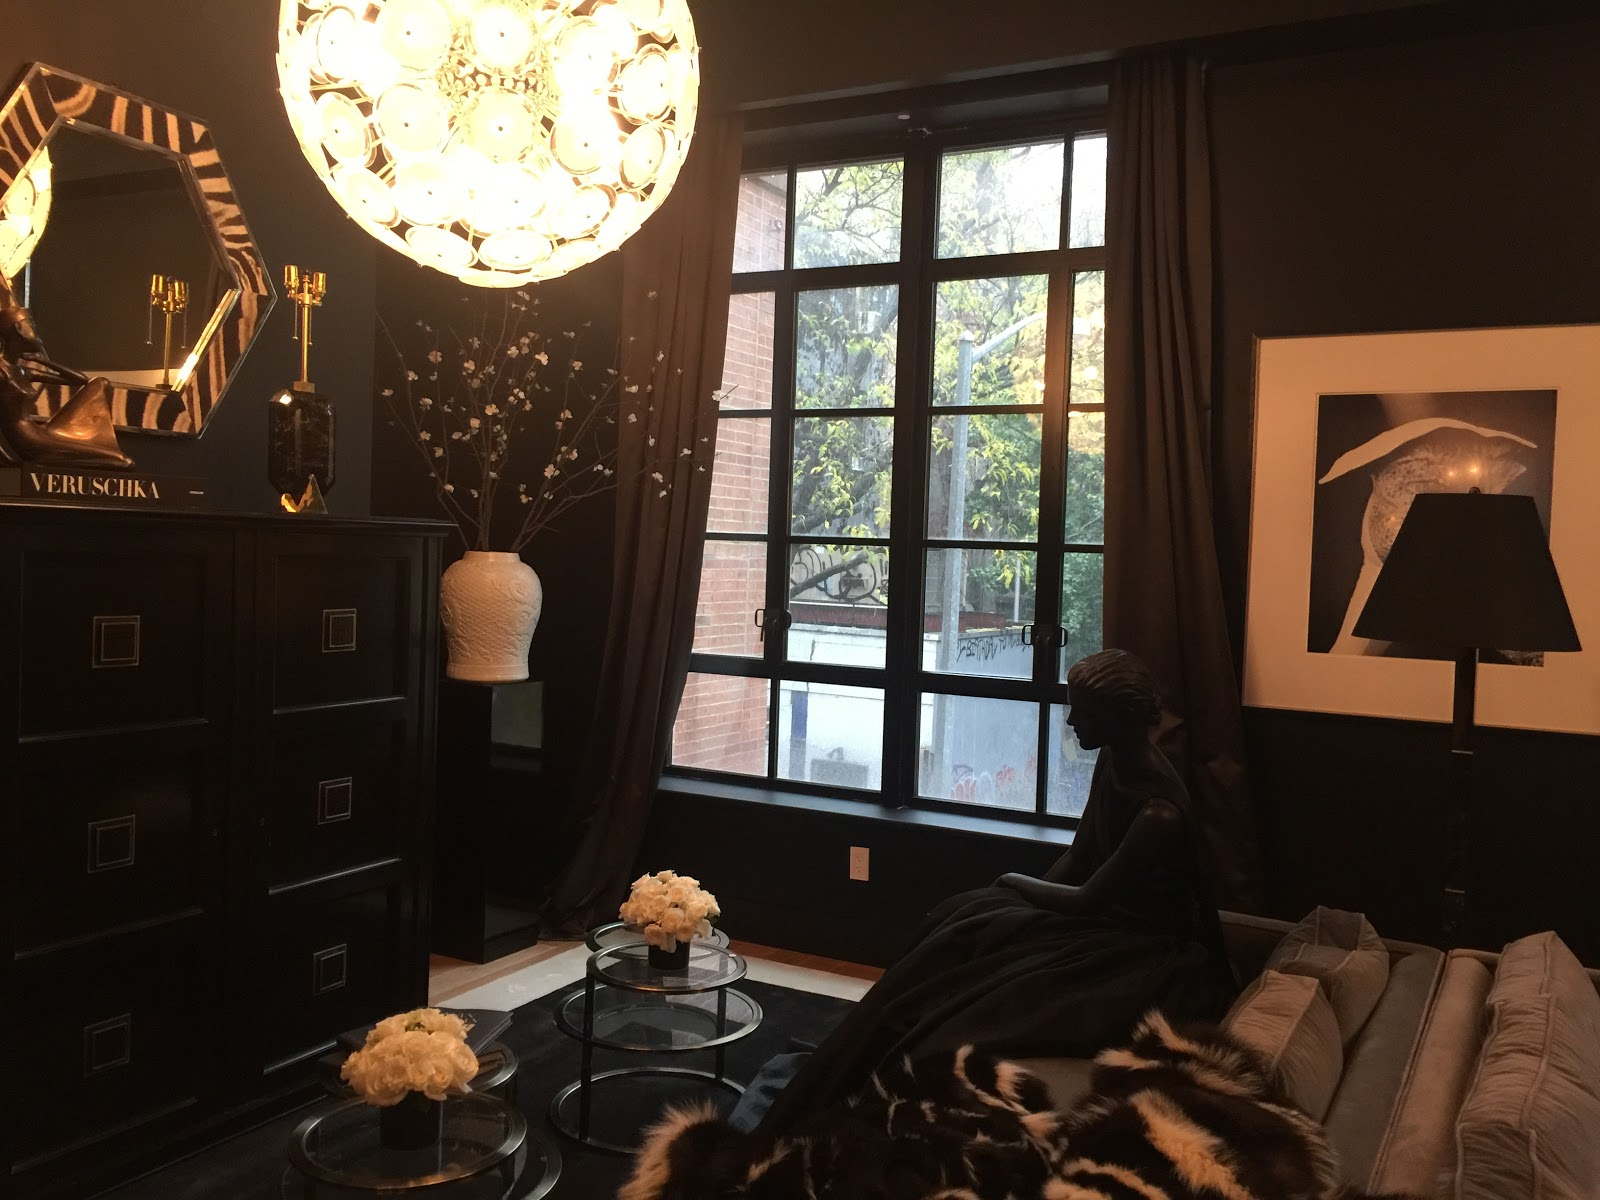 Nest By Tamara Moody Edgy Design Sets The Interior